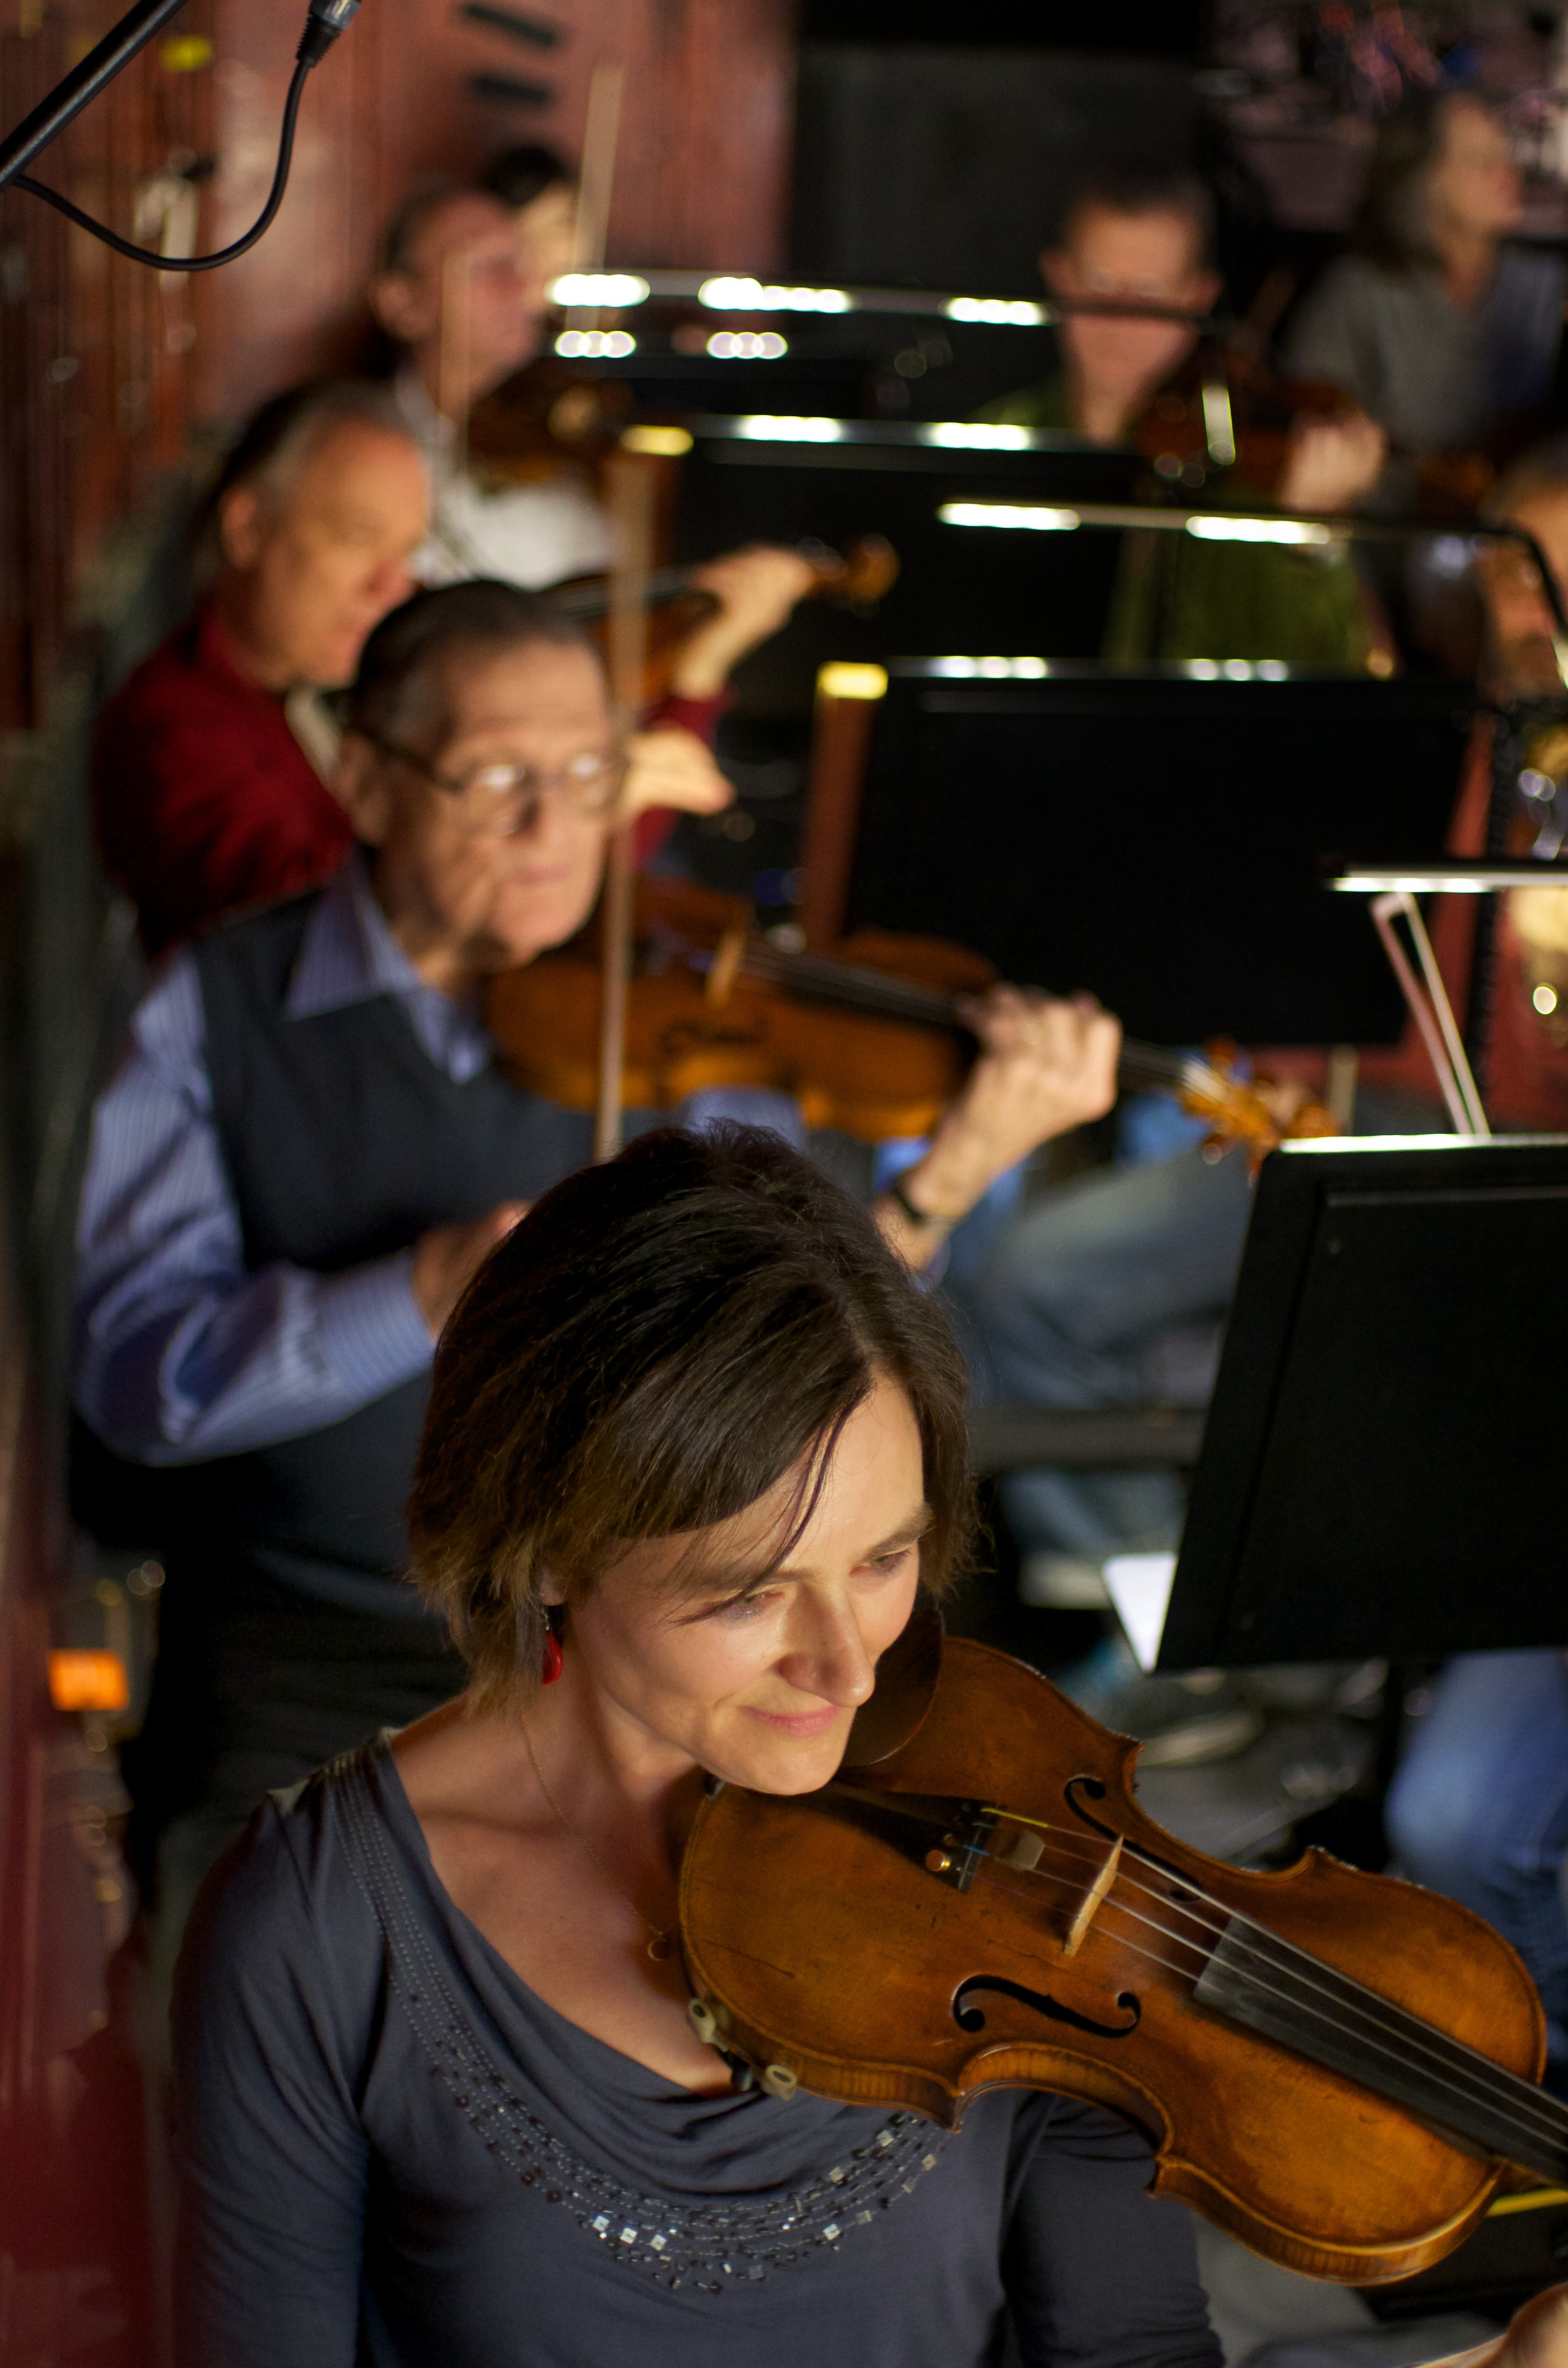 Before rehearsal: Caterina Szepes (foreground) smiles as she anticipates brain oscillation coordination with her first violin colleagues.